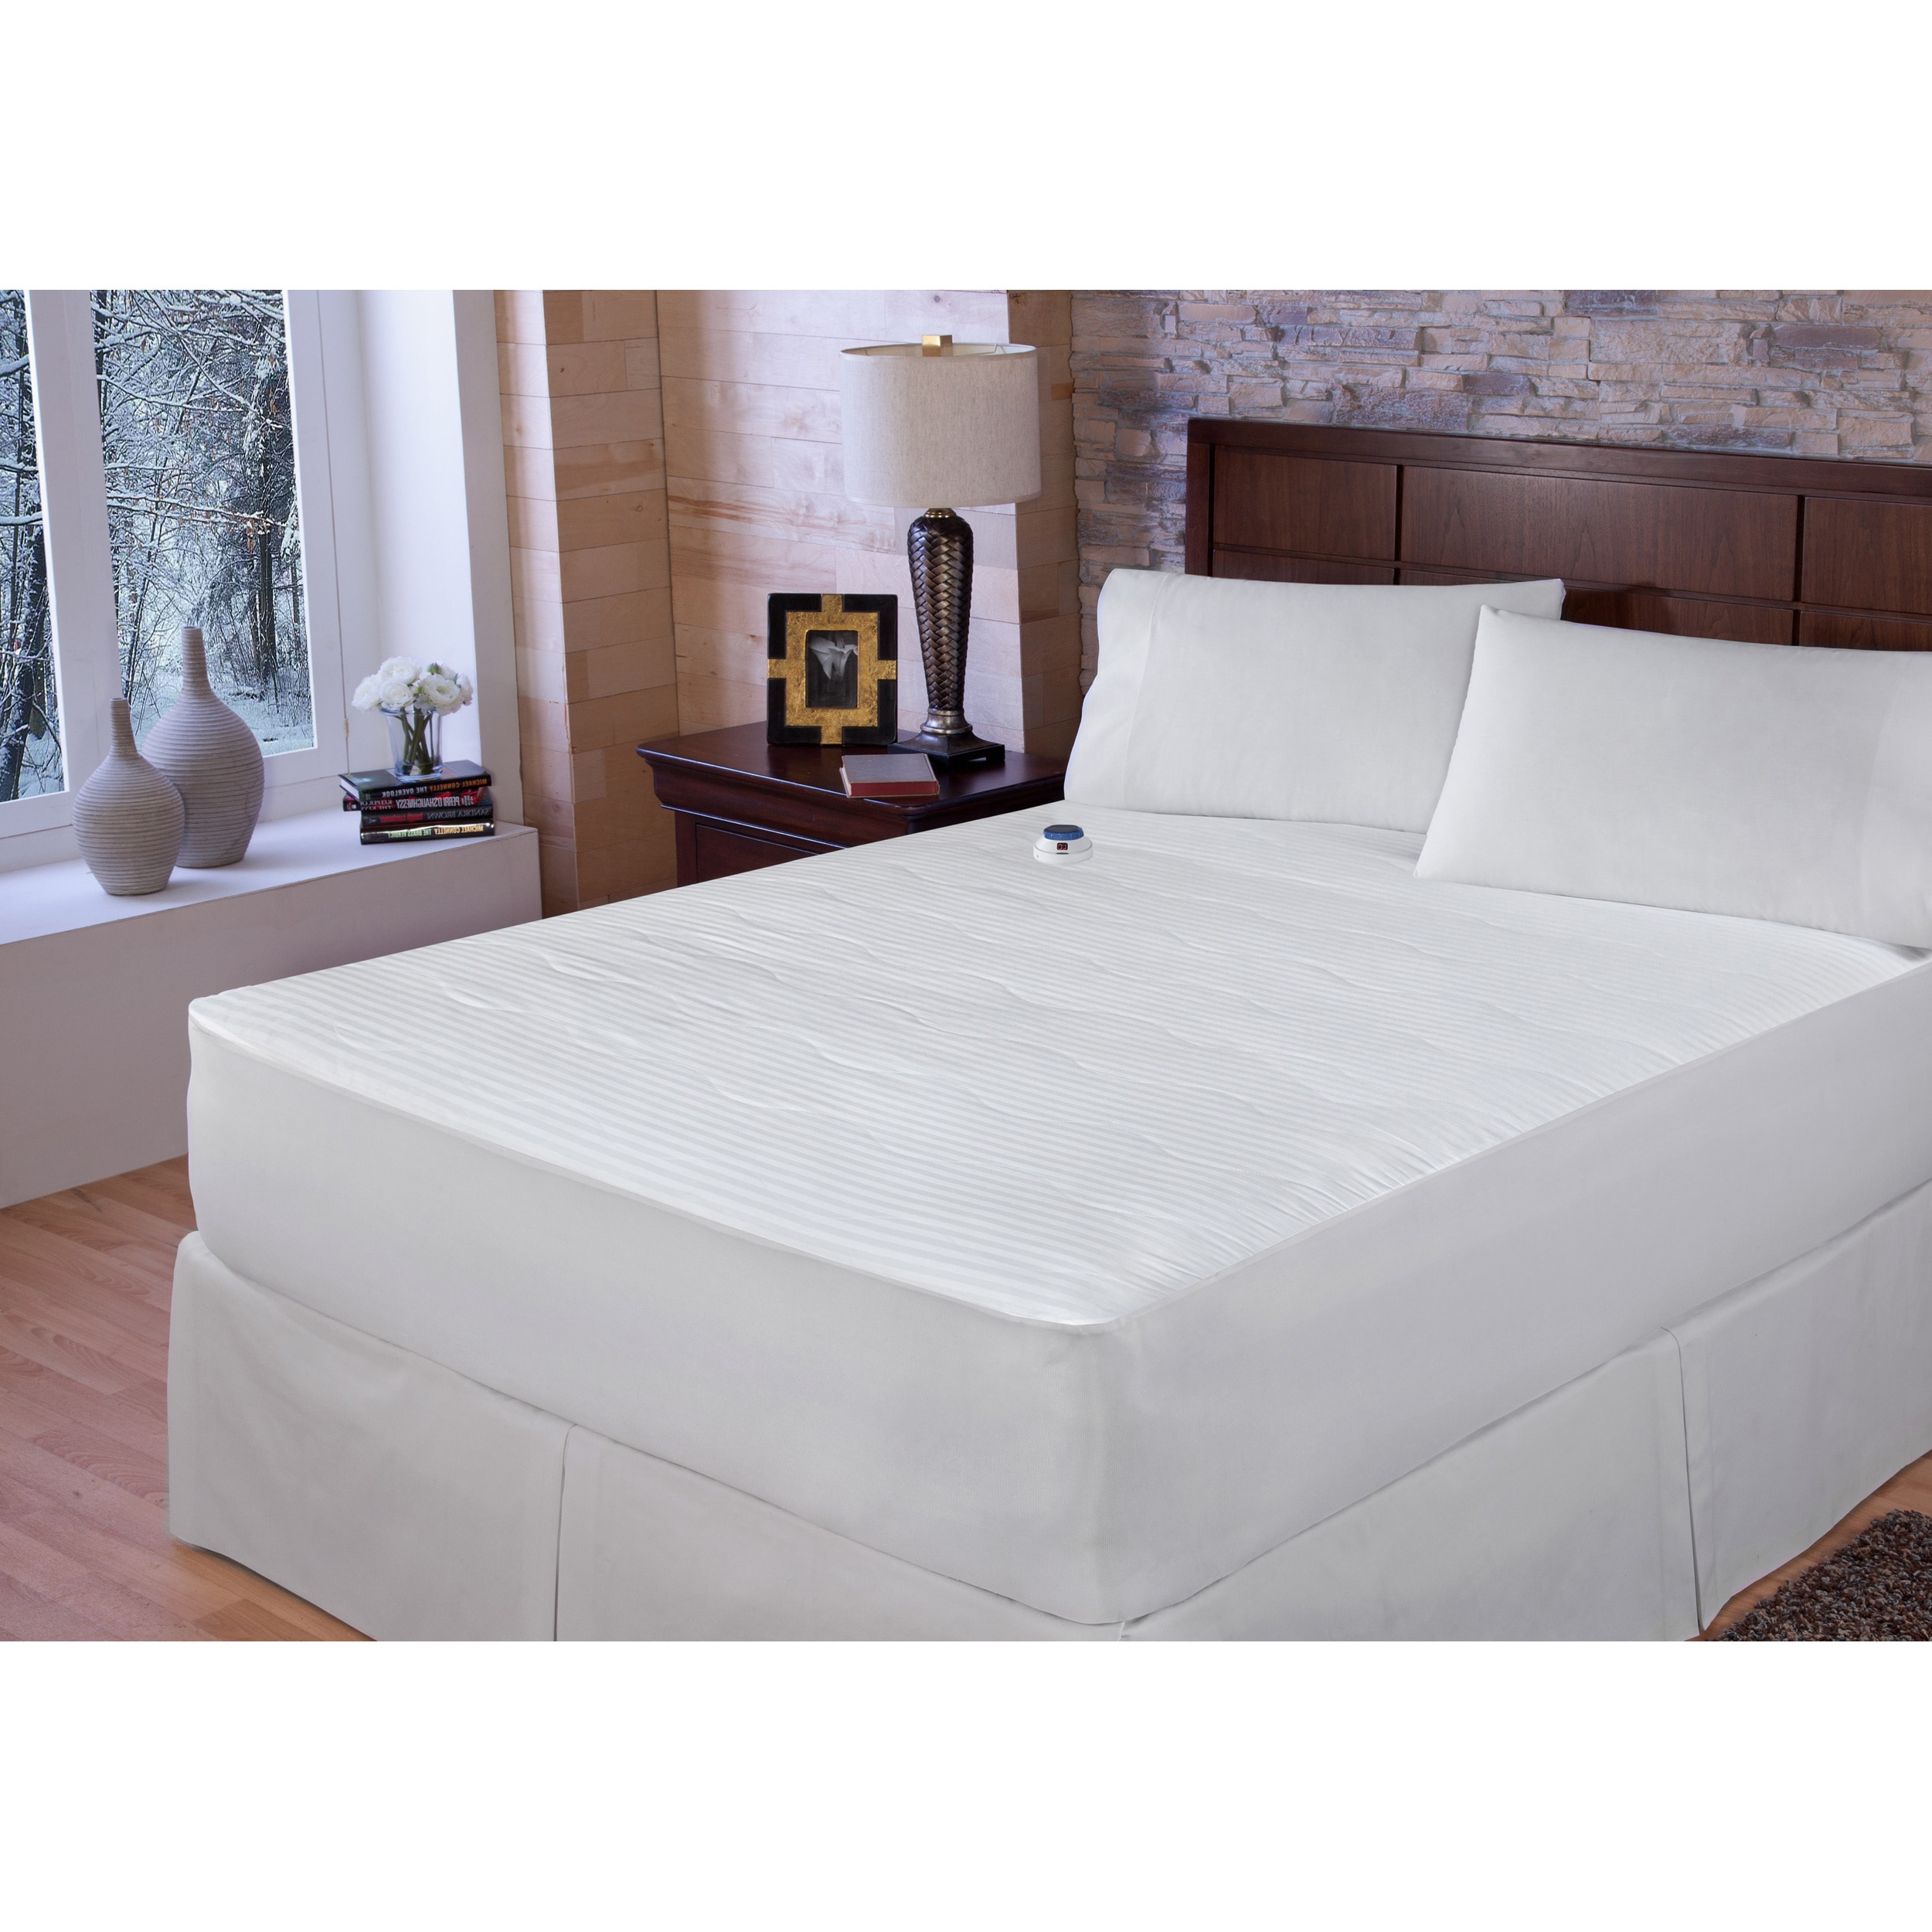 restonic com mattress the reviews healthrest mattresses goodbed by picture tempagel